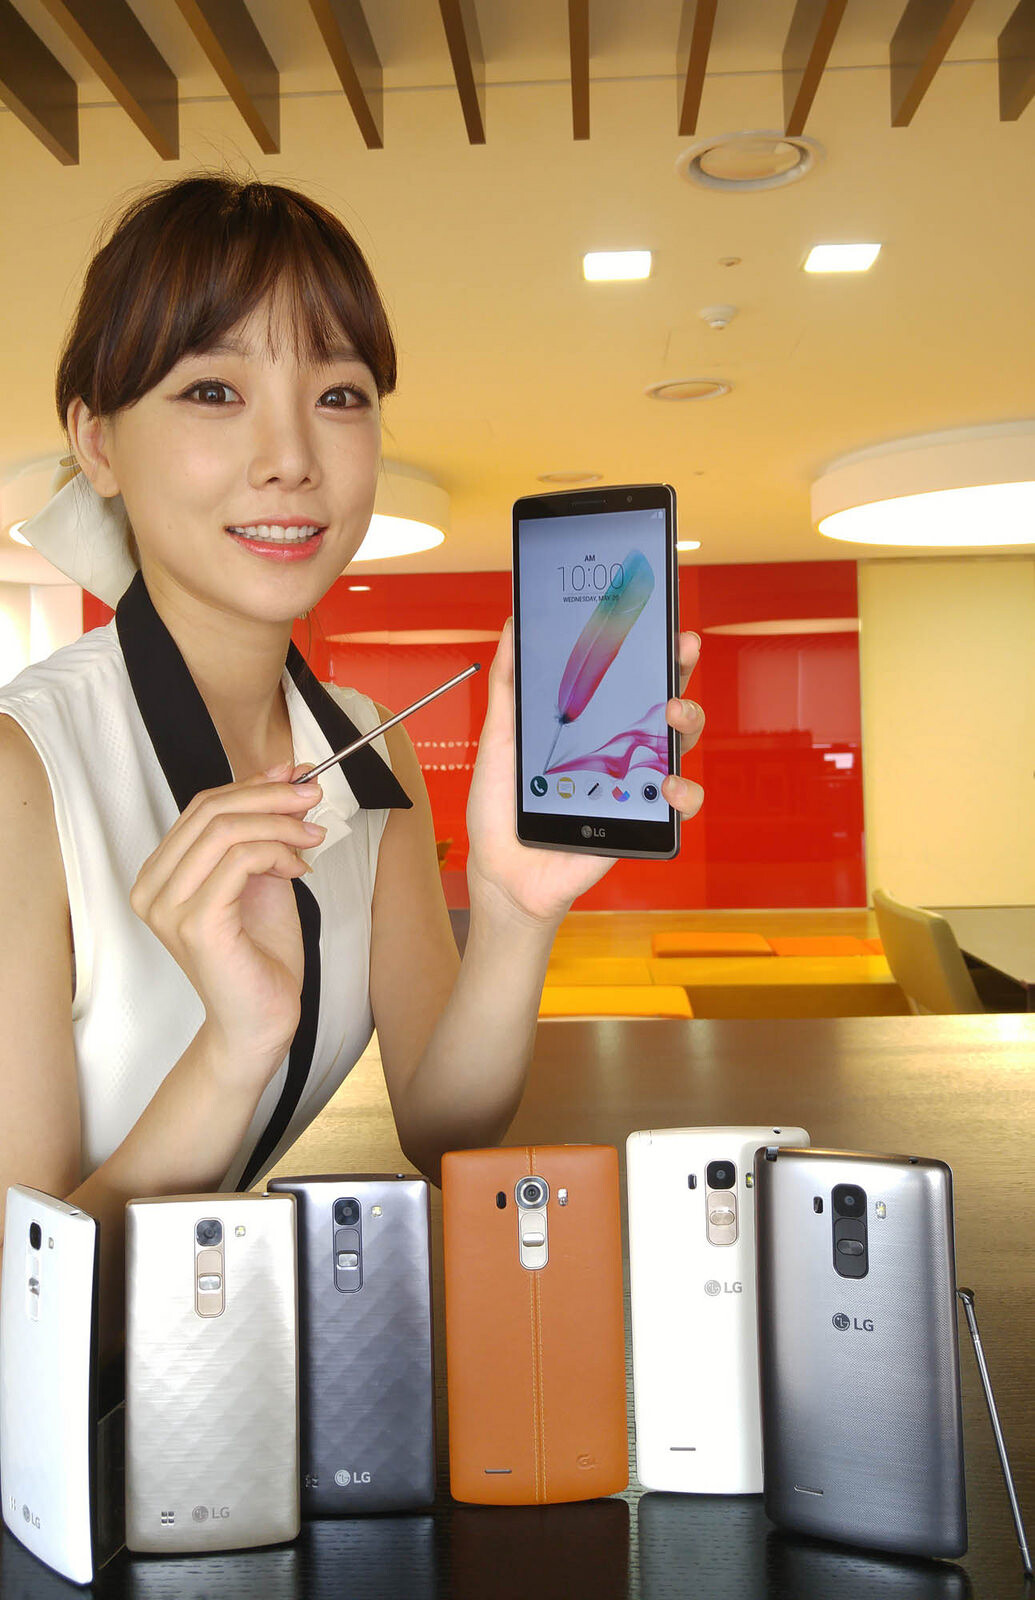 LG officially intros the G4 Stylus and G4c (a mini G4)